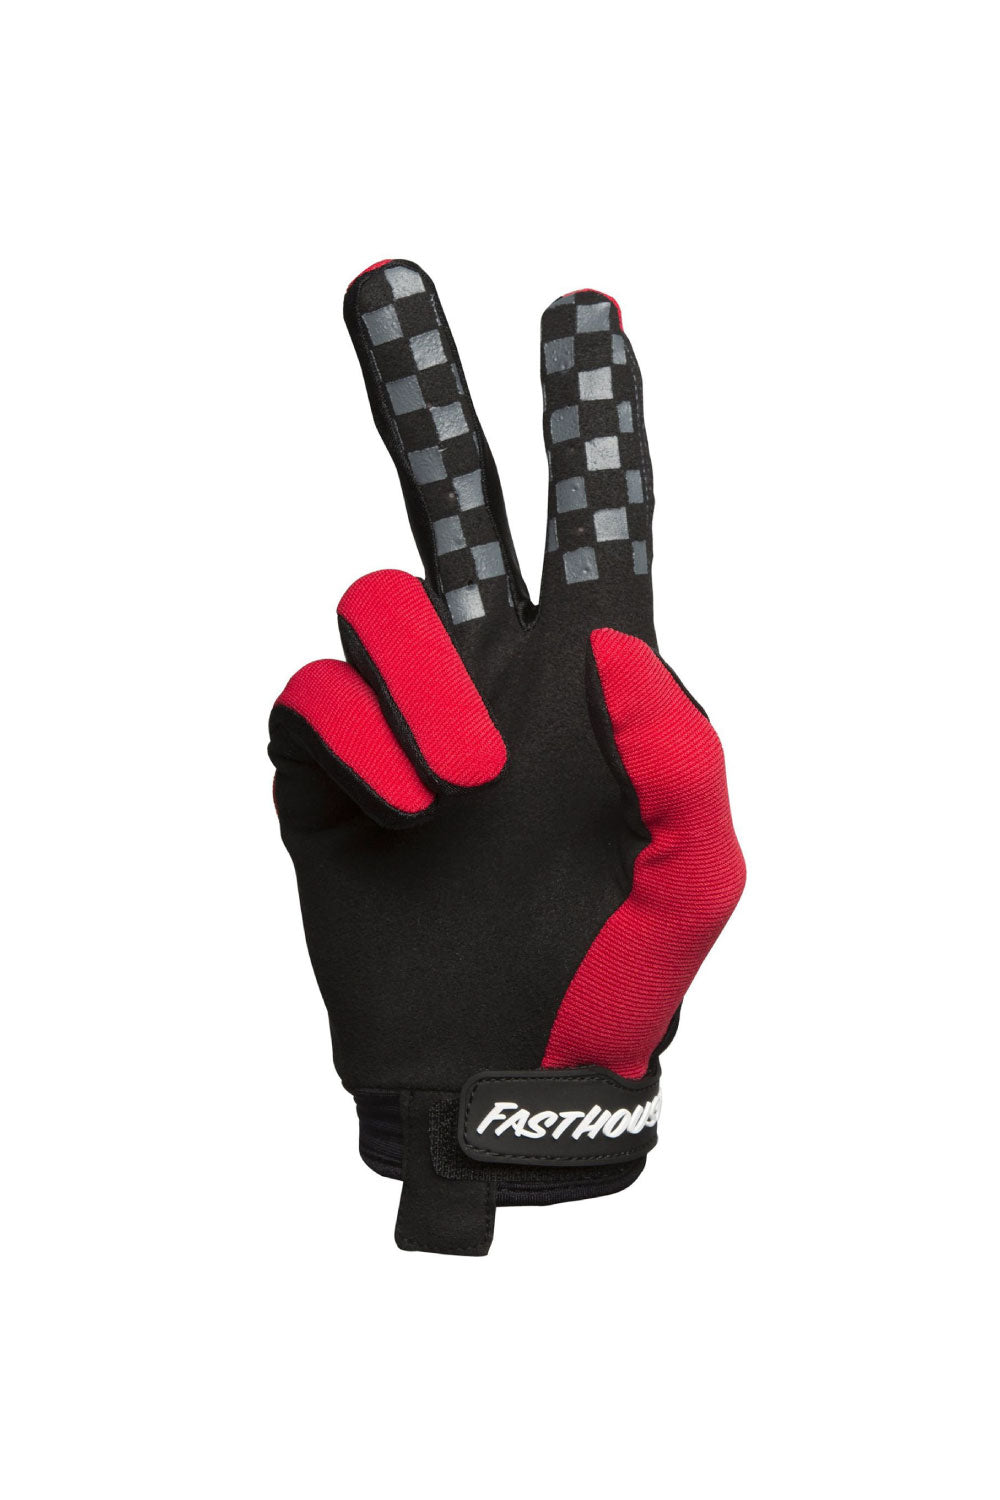 Fasthouse YOUTH Speed Style Glove